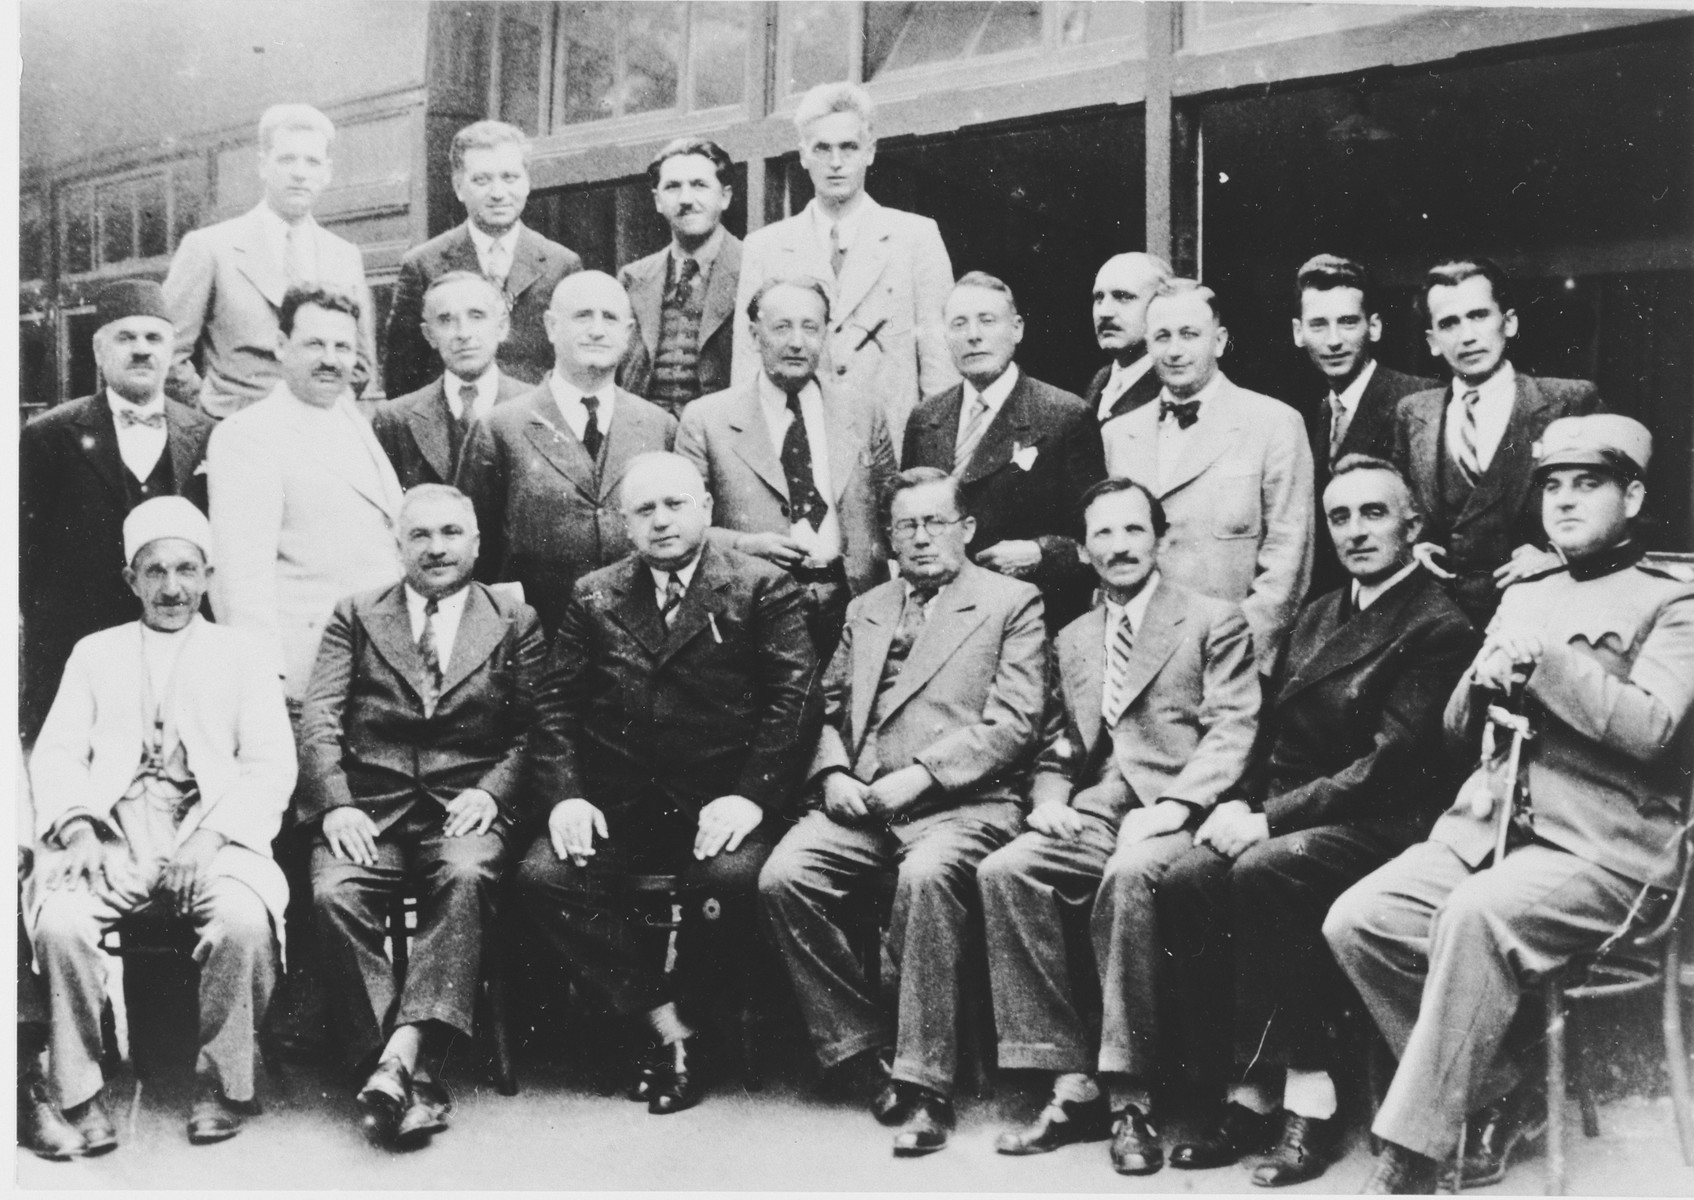 Group portrait of Yugoslav men.  Among those pictured is Mehmed Hujika (standing in the top row, right side), a teacher from Zenica and Muslim resistance fighter.  He was arrested in 1944 and taken to the Lepoglava prison, where he was killed.